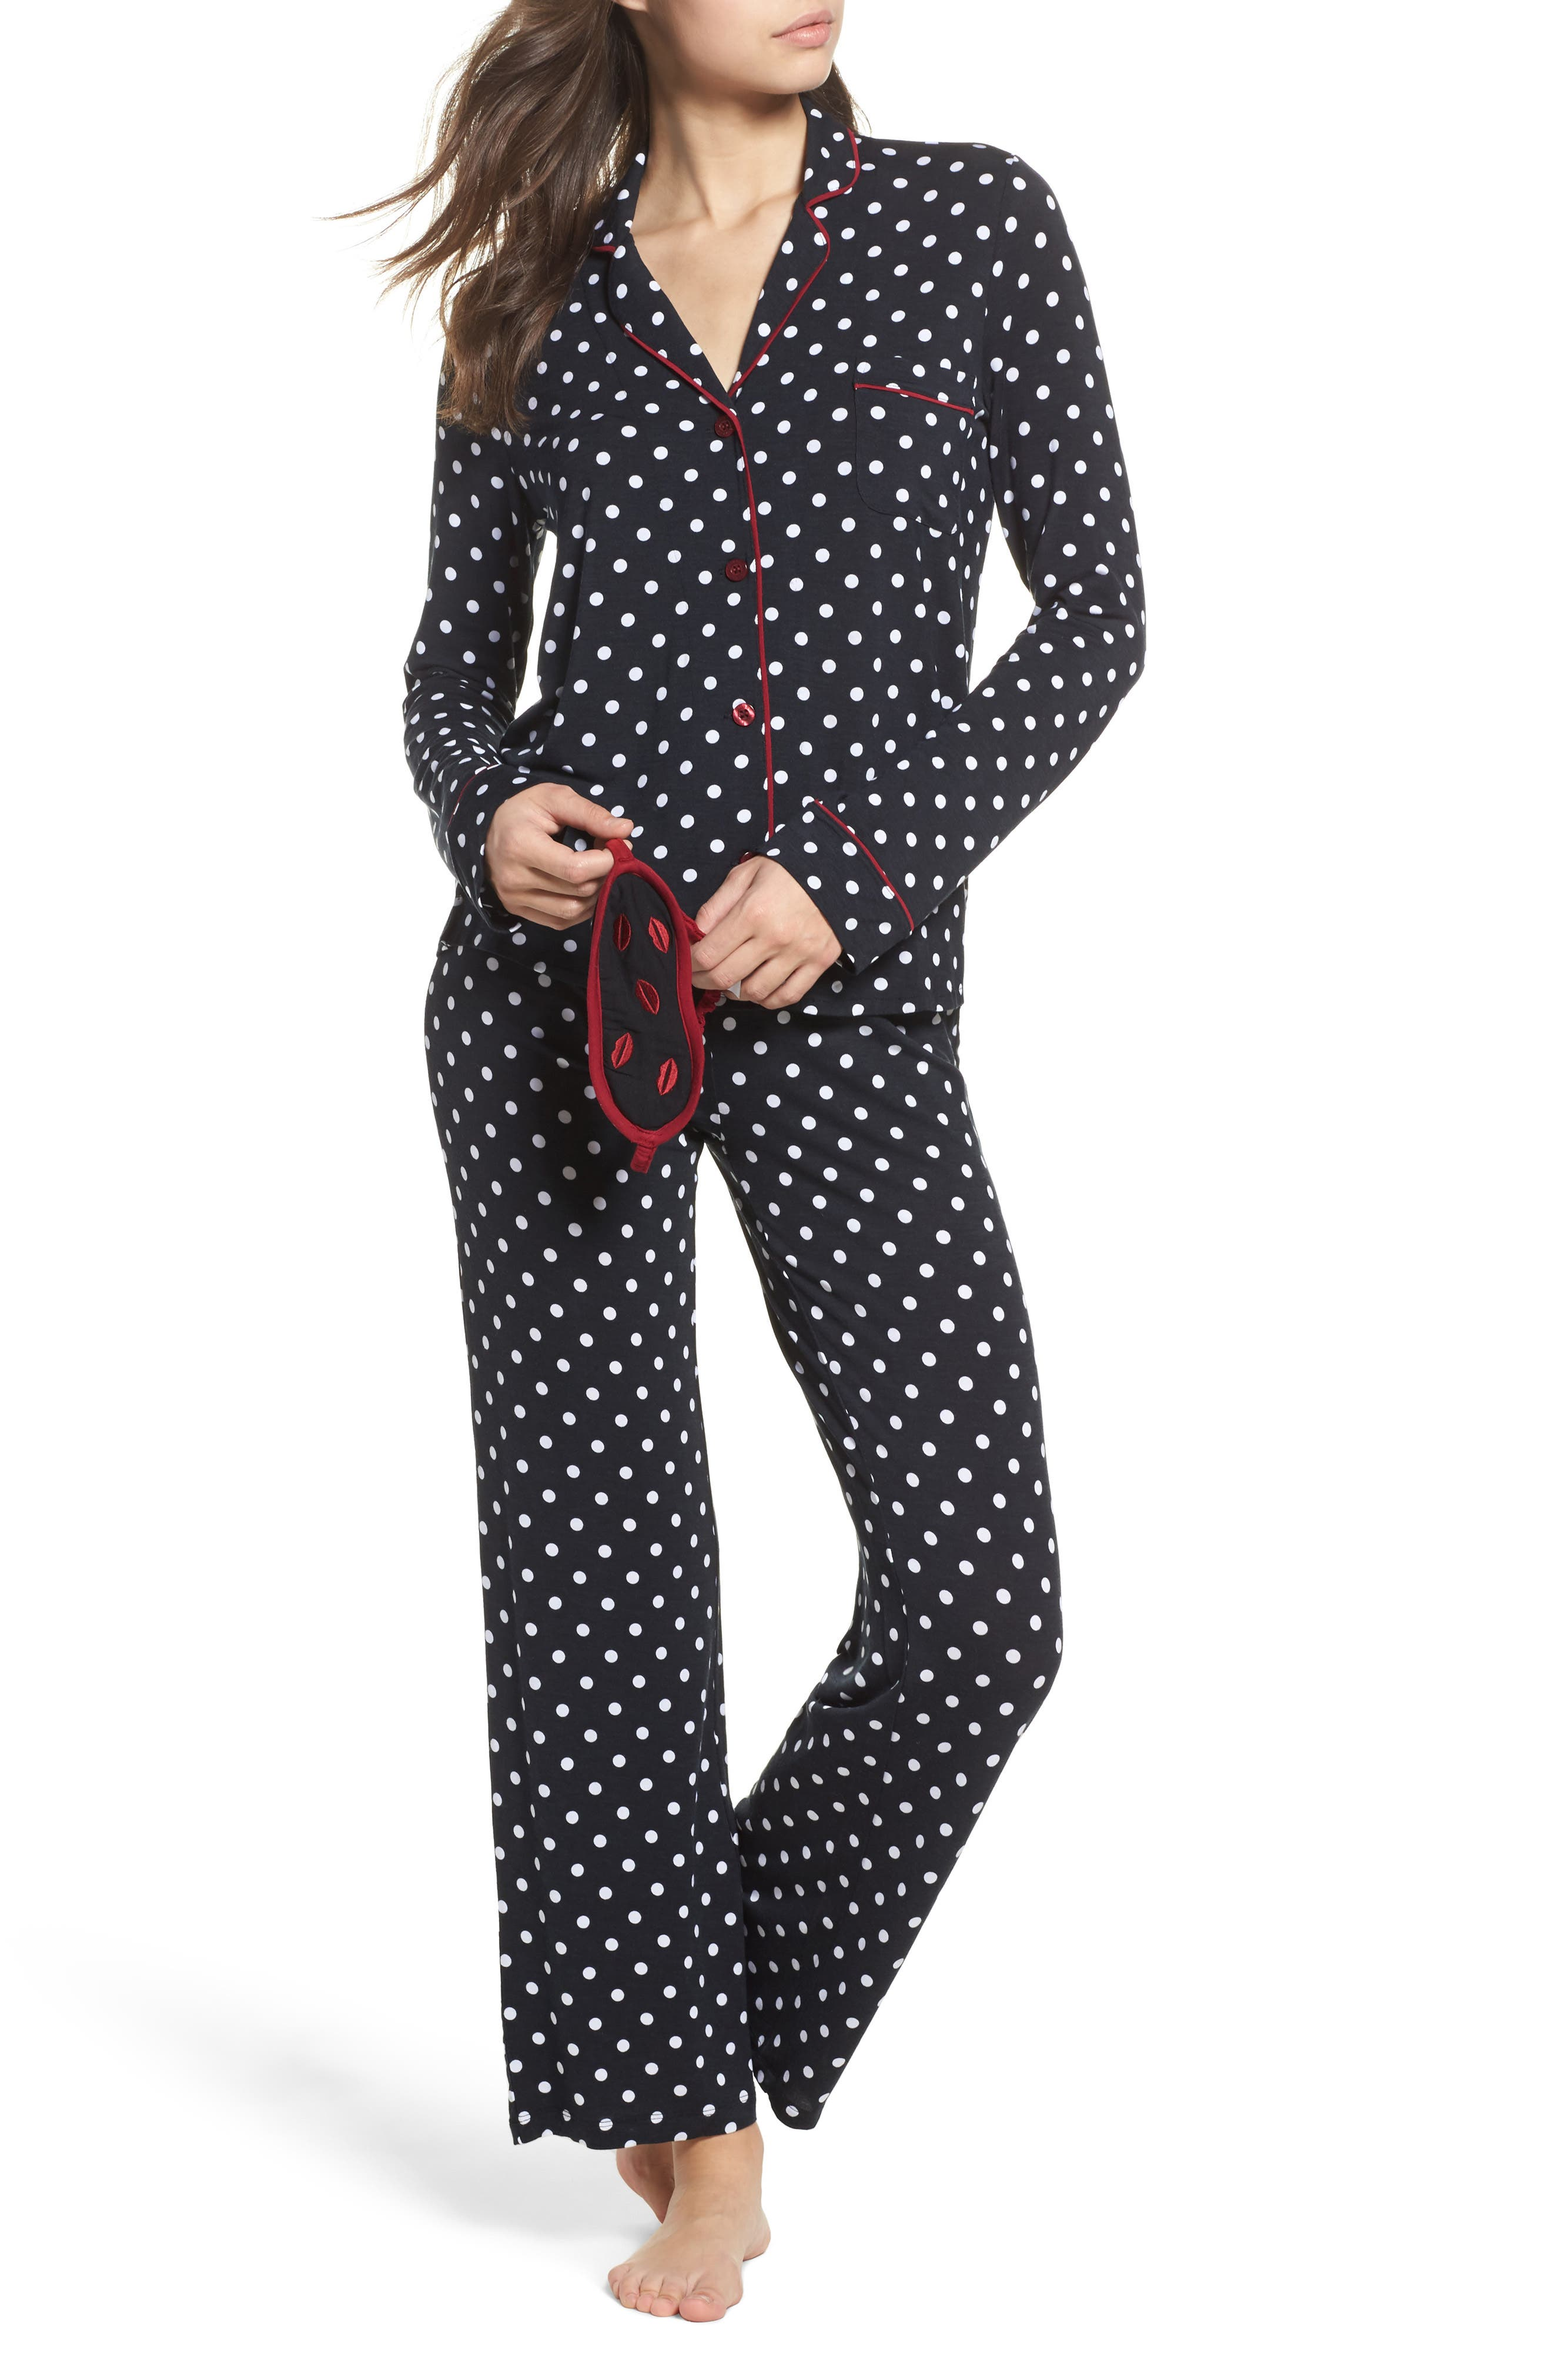 Stretch Modal Pajamas & Eye Mask,                         Main,                         color, Black